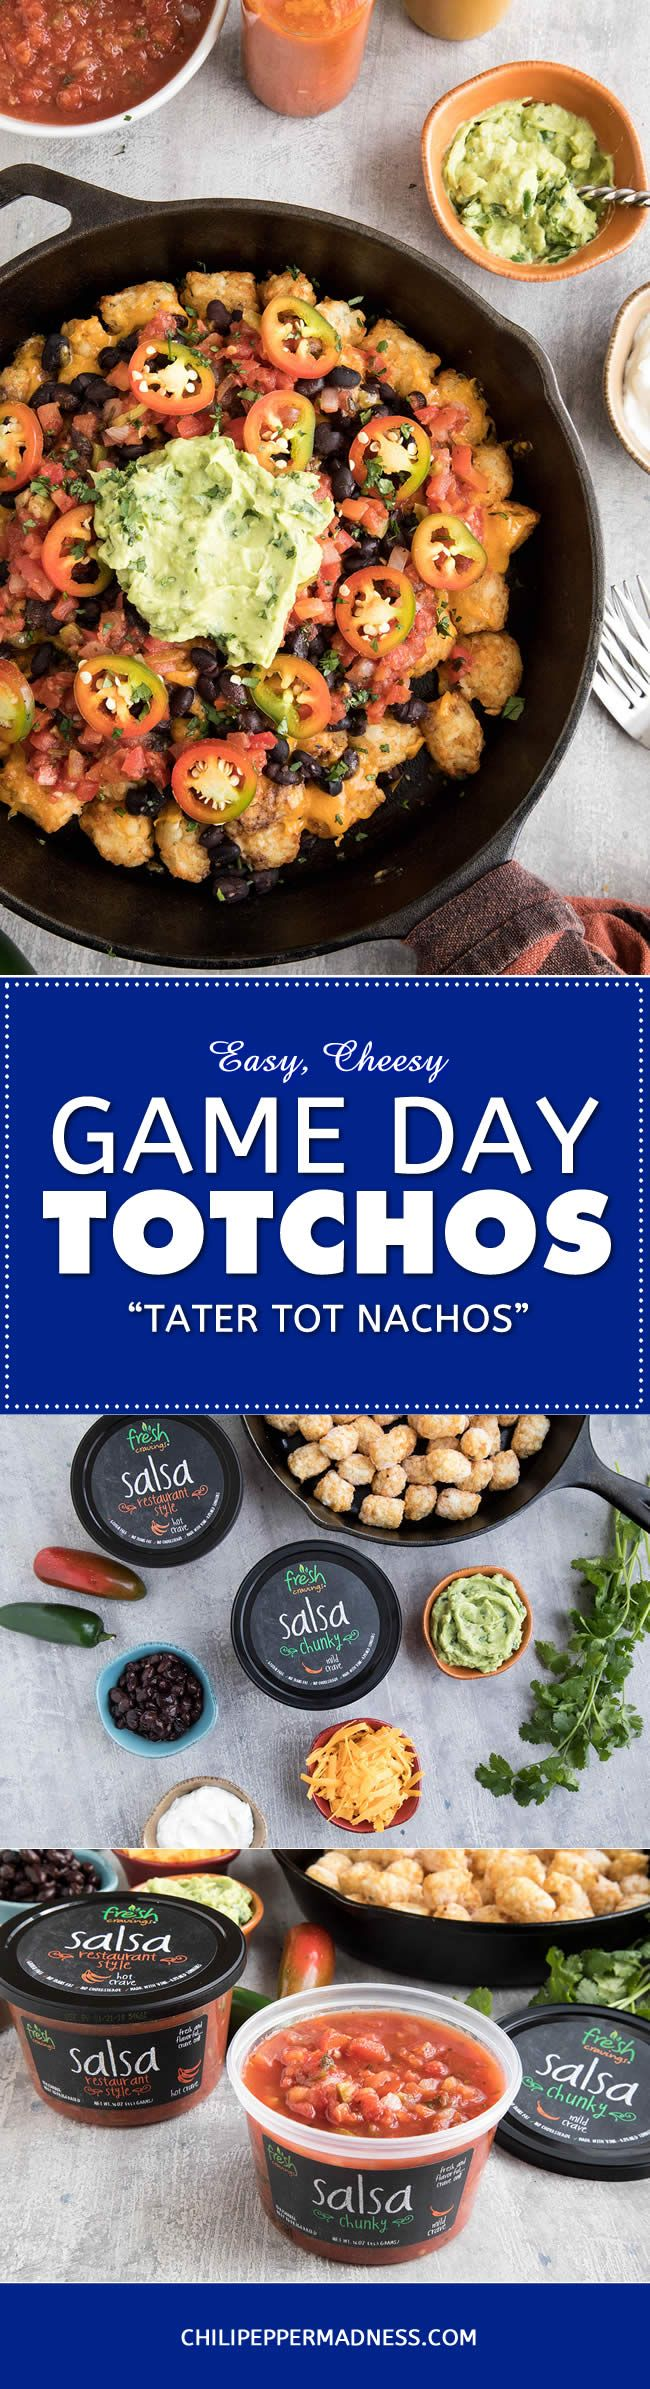 Easy Cheesy Game Day Totchos (Tater Tot Nachos) - #sponsored Energize your game day gatherings with this easy, cheesy recipe of crispy tater tots smothered with black beans and melty cheddar cheese, topped with chunky Fresh Cravings Salsa, jalapenos and guacamole.  #FreshCravingsSalsa